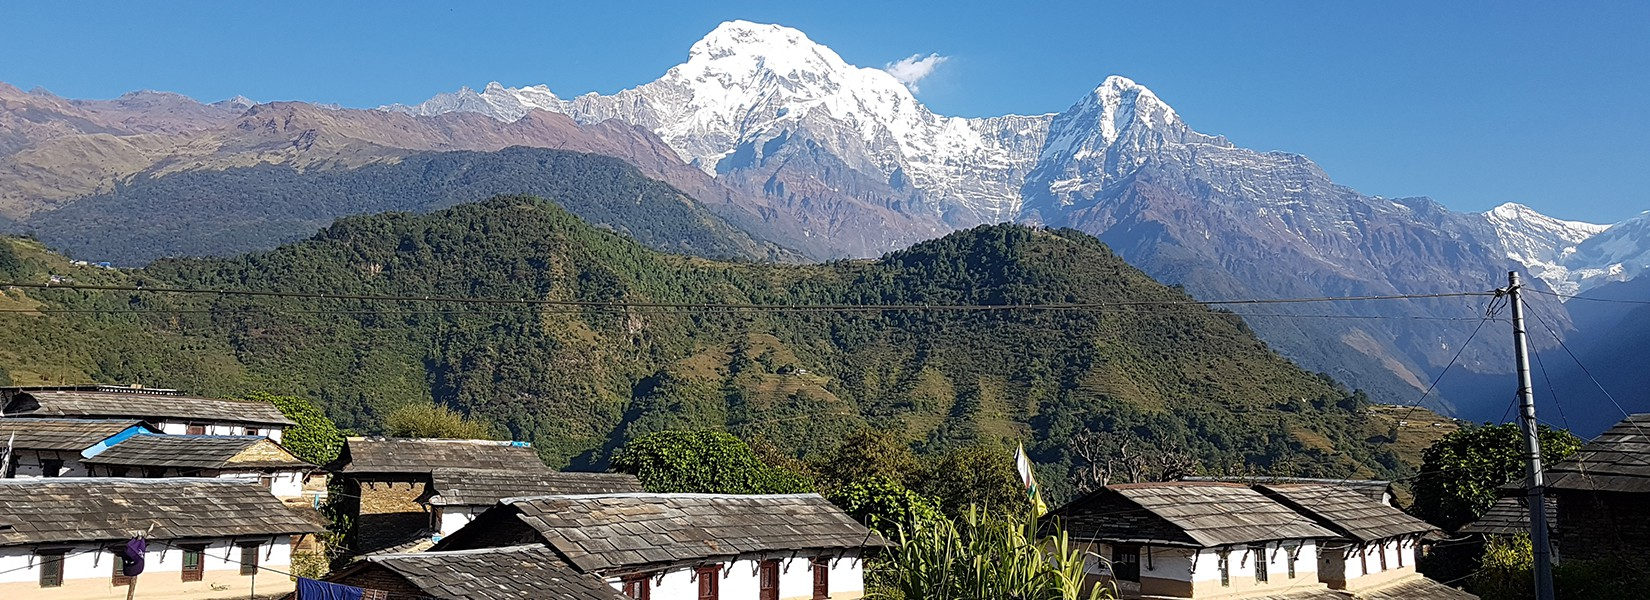 Poon Hill And Annapurna Base Camp Trekking